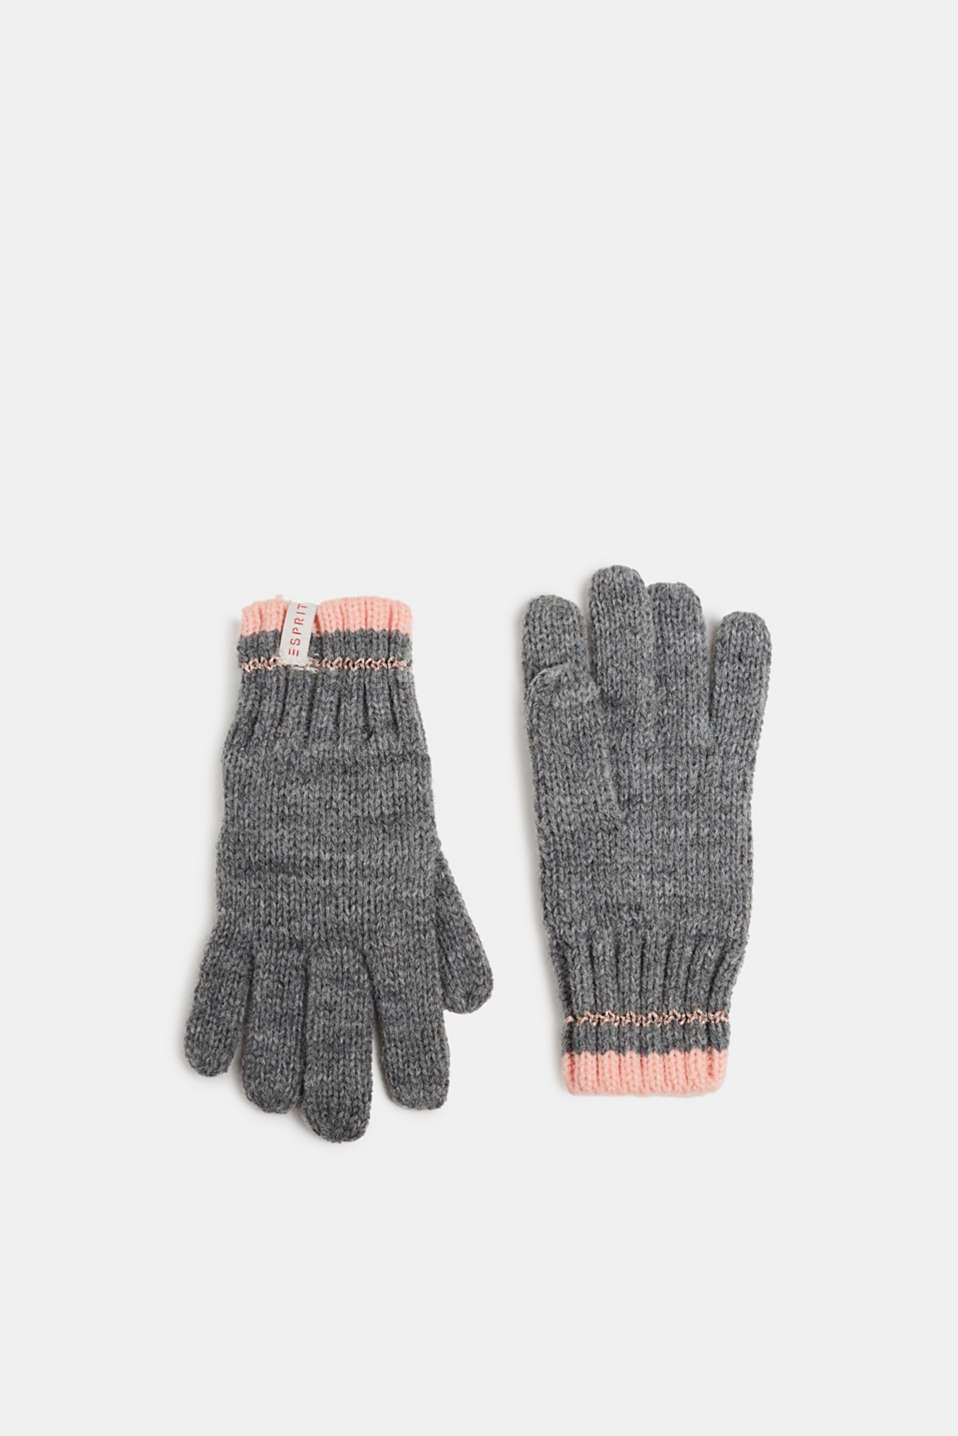 Esprit - Knit gloves with a glittering effect